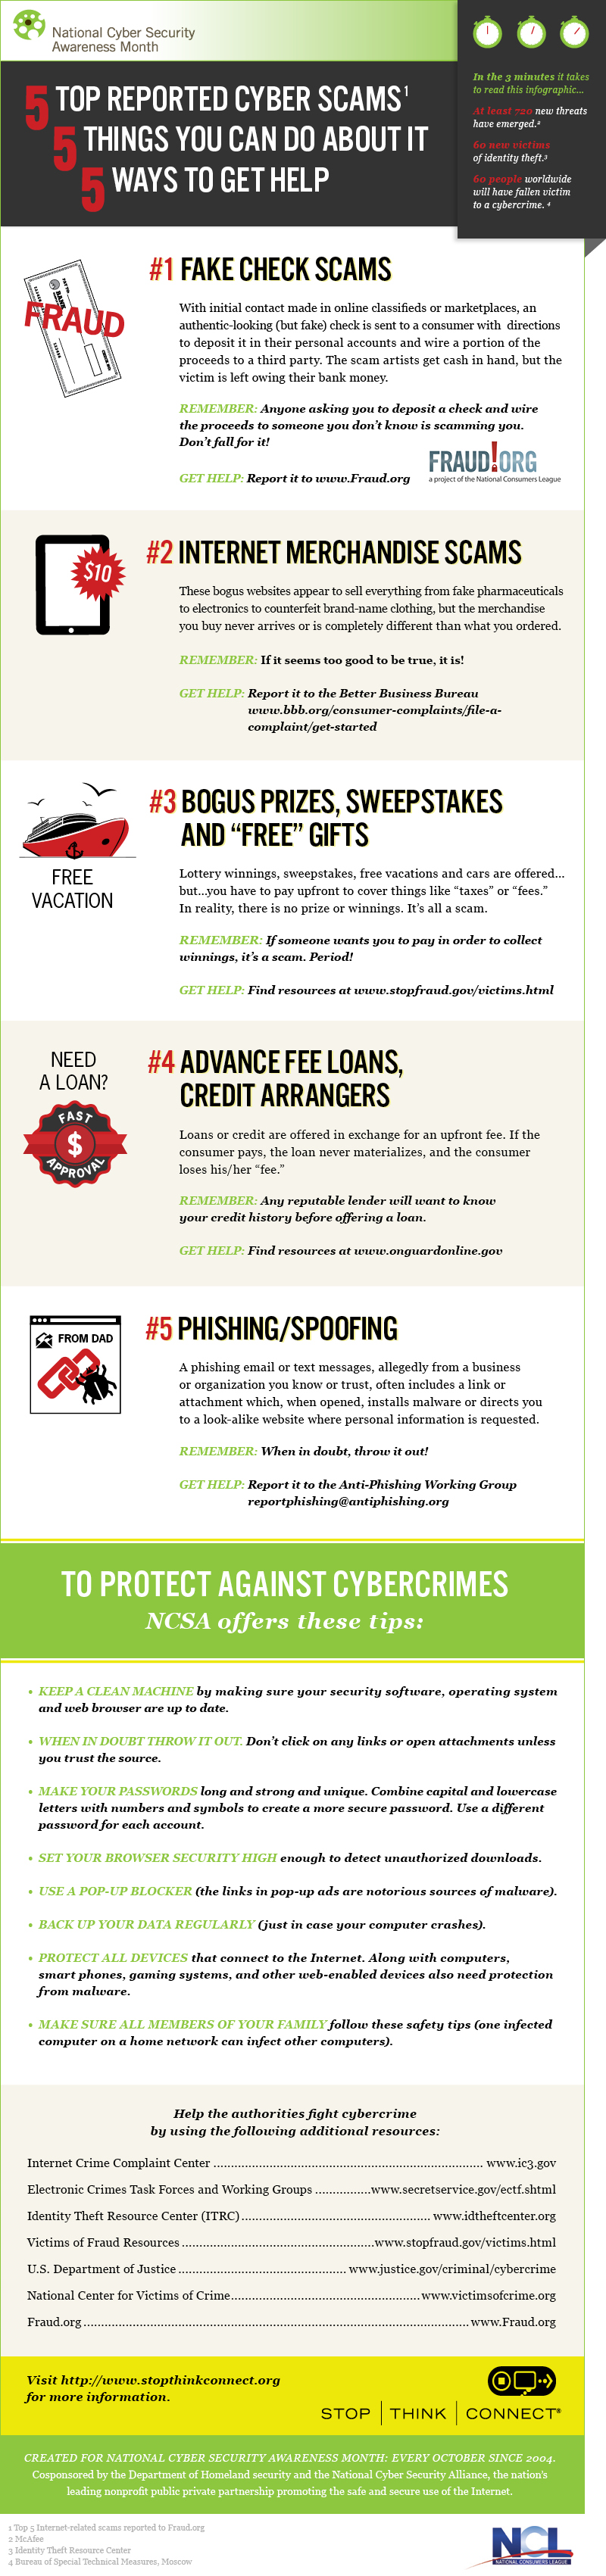 Top 5 Reported Cyber Scams